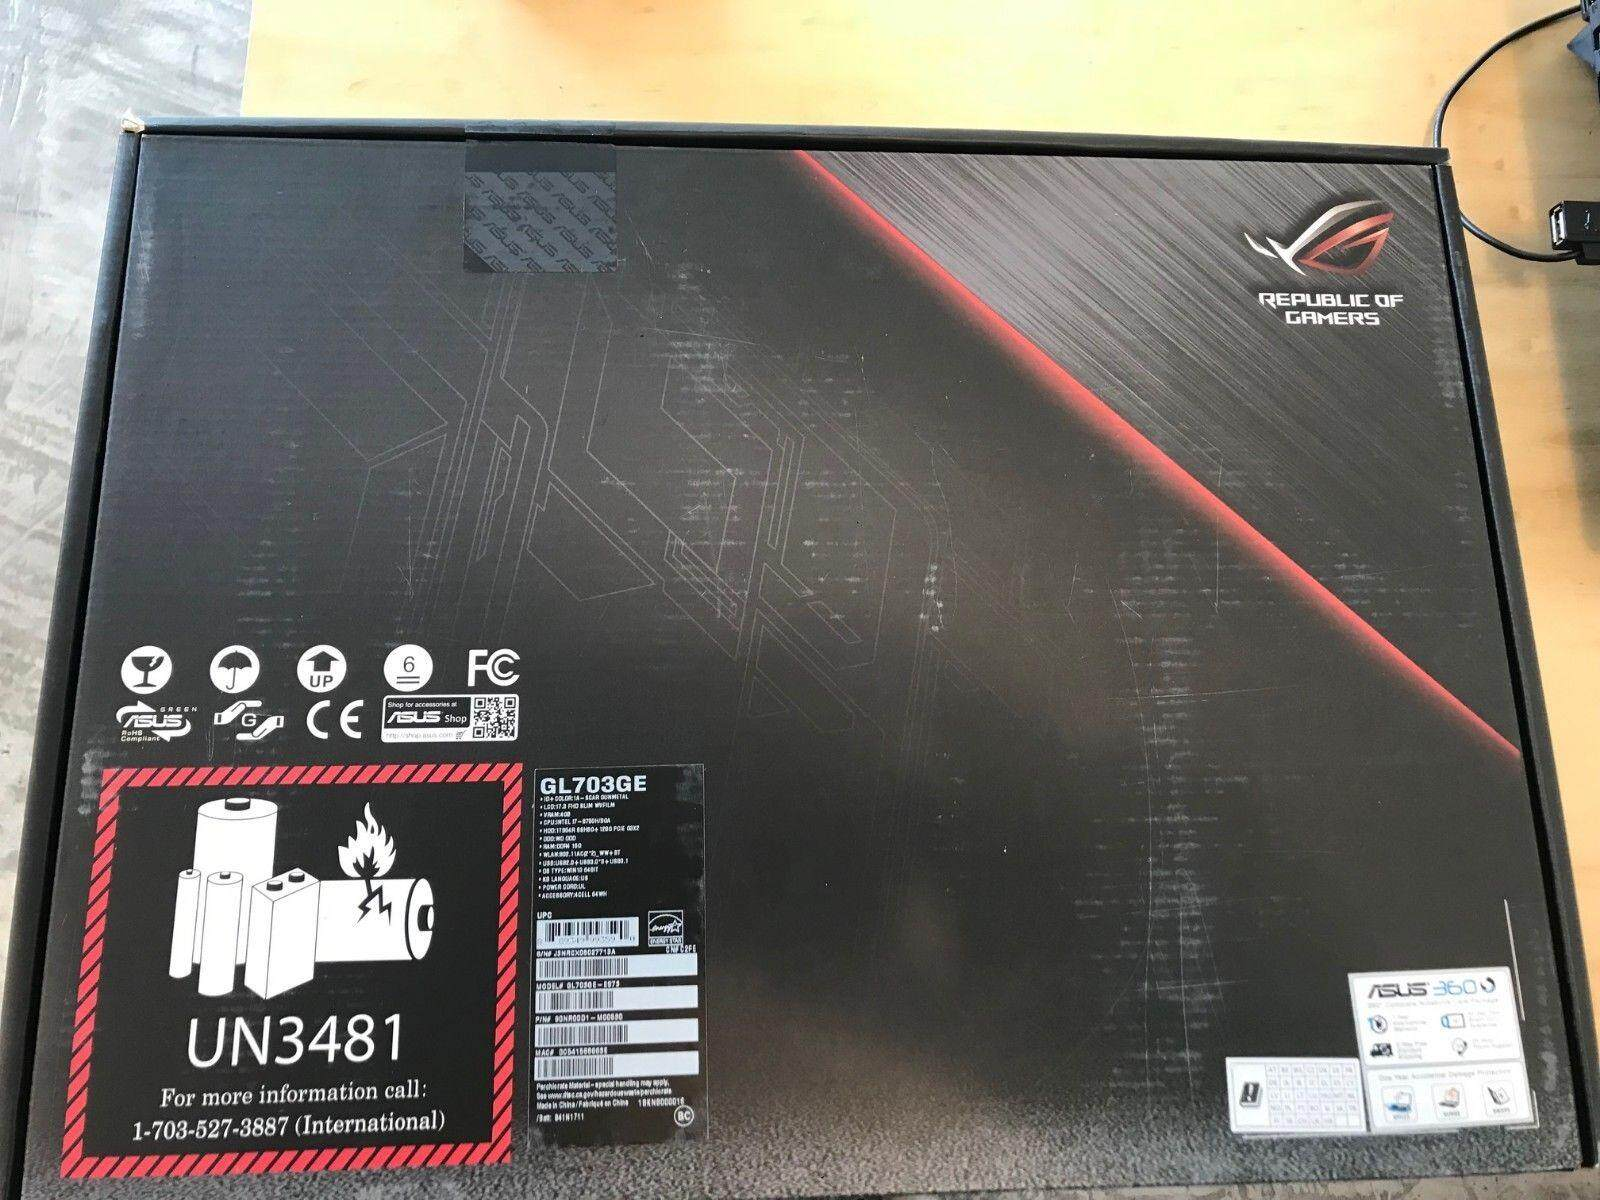 ASUS ROG (Republic of Gamers) Strix GL703GE-ES73 Scar Edition Gaming Laptop Malaysia